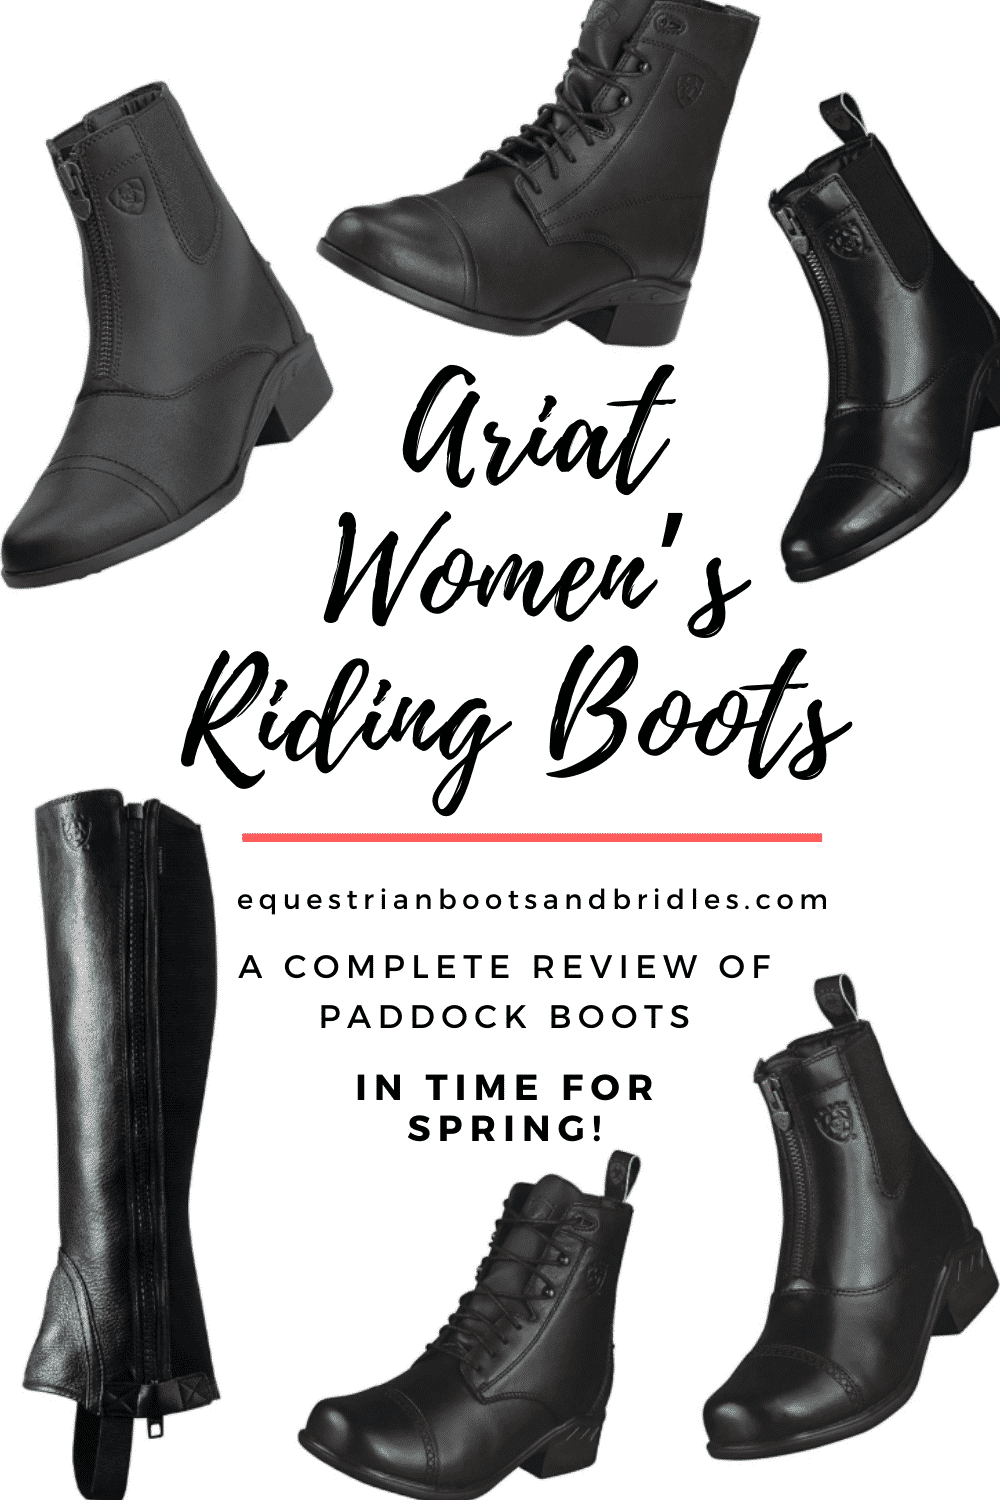 Ariat Women's Riding Boots - A Complete Review of Paddock Boots